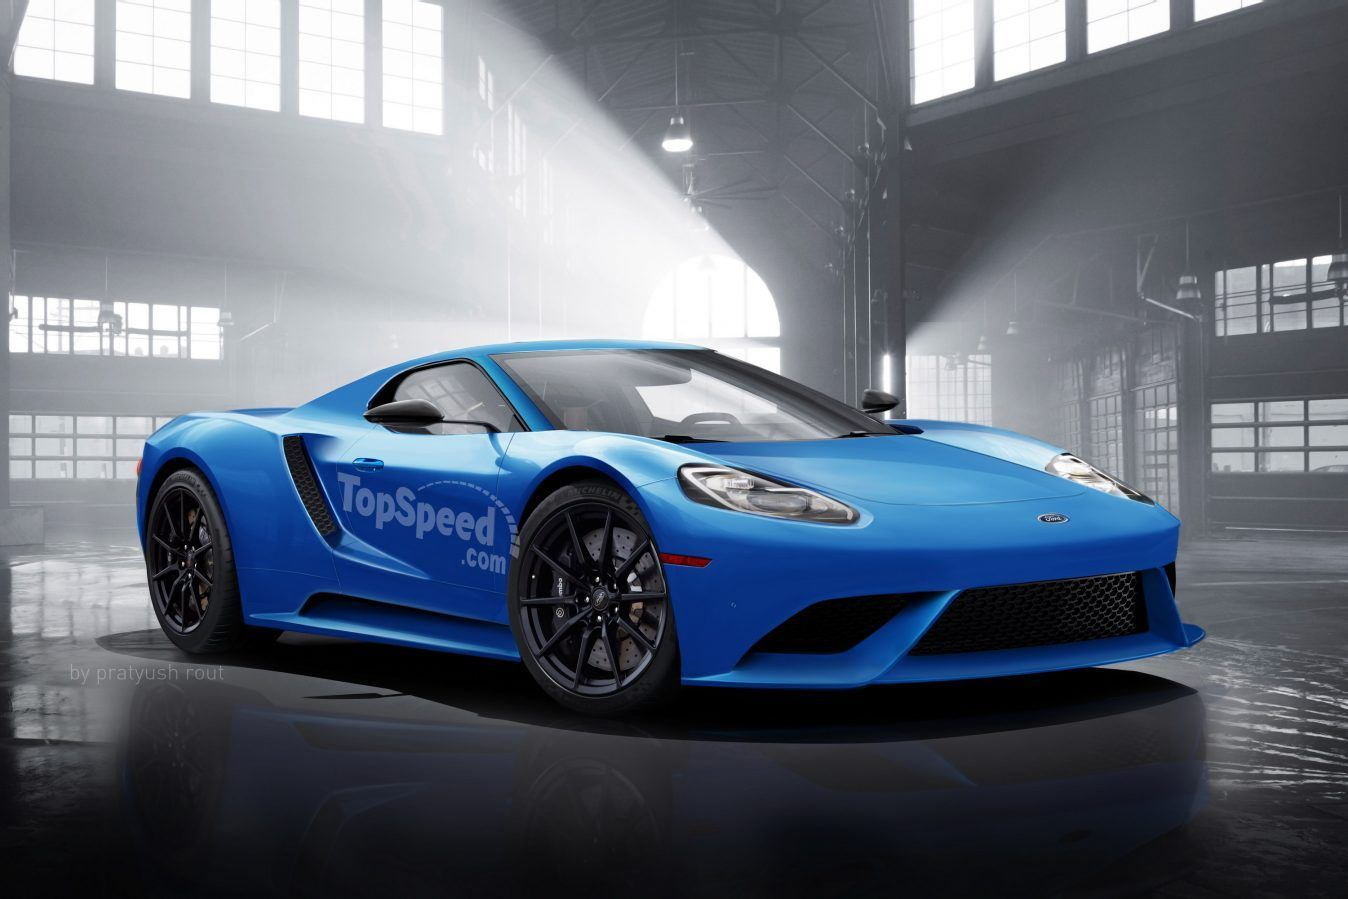 Ford Sport Car 2020 Http Wallpapersalbum Com Ford Sport Car 2020